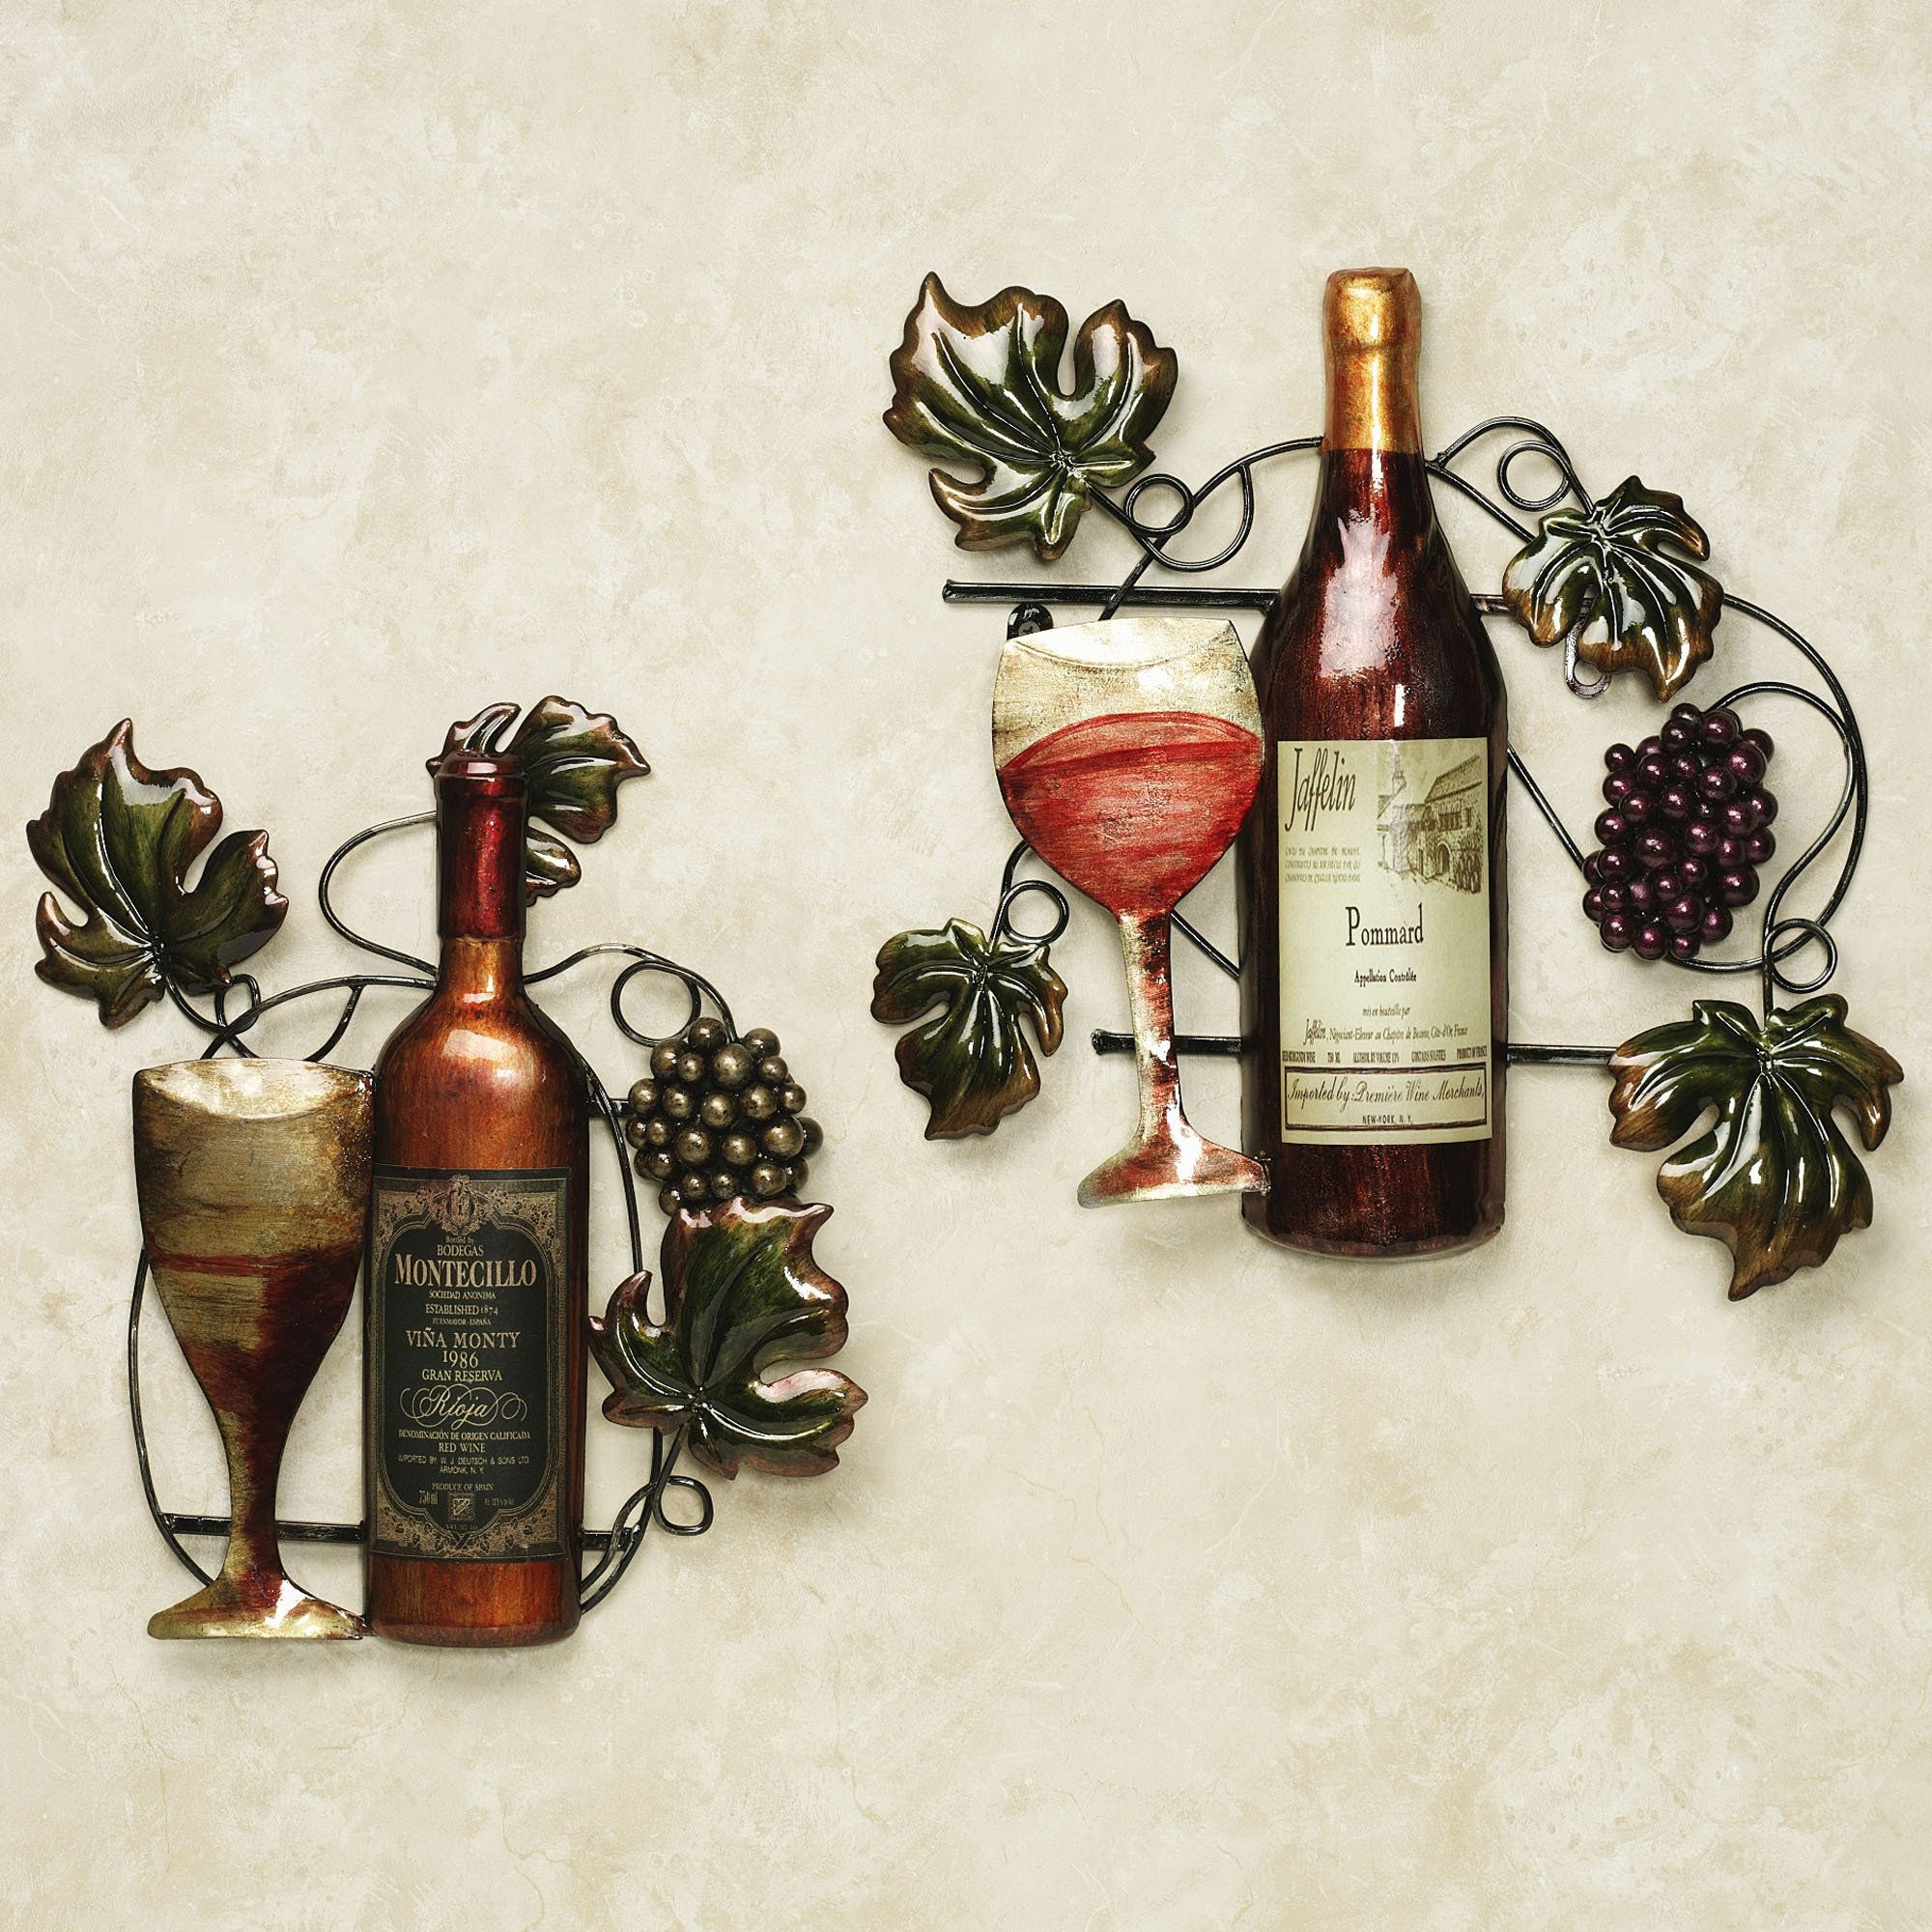 wine theme kitchen decor is a fantastic way to make a